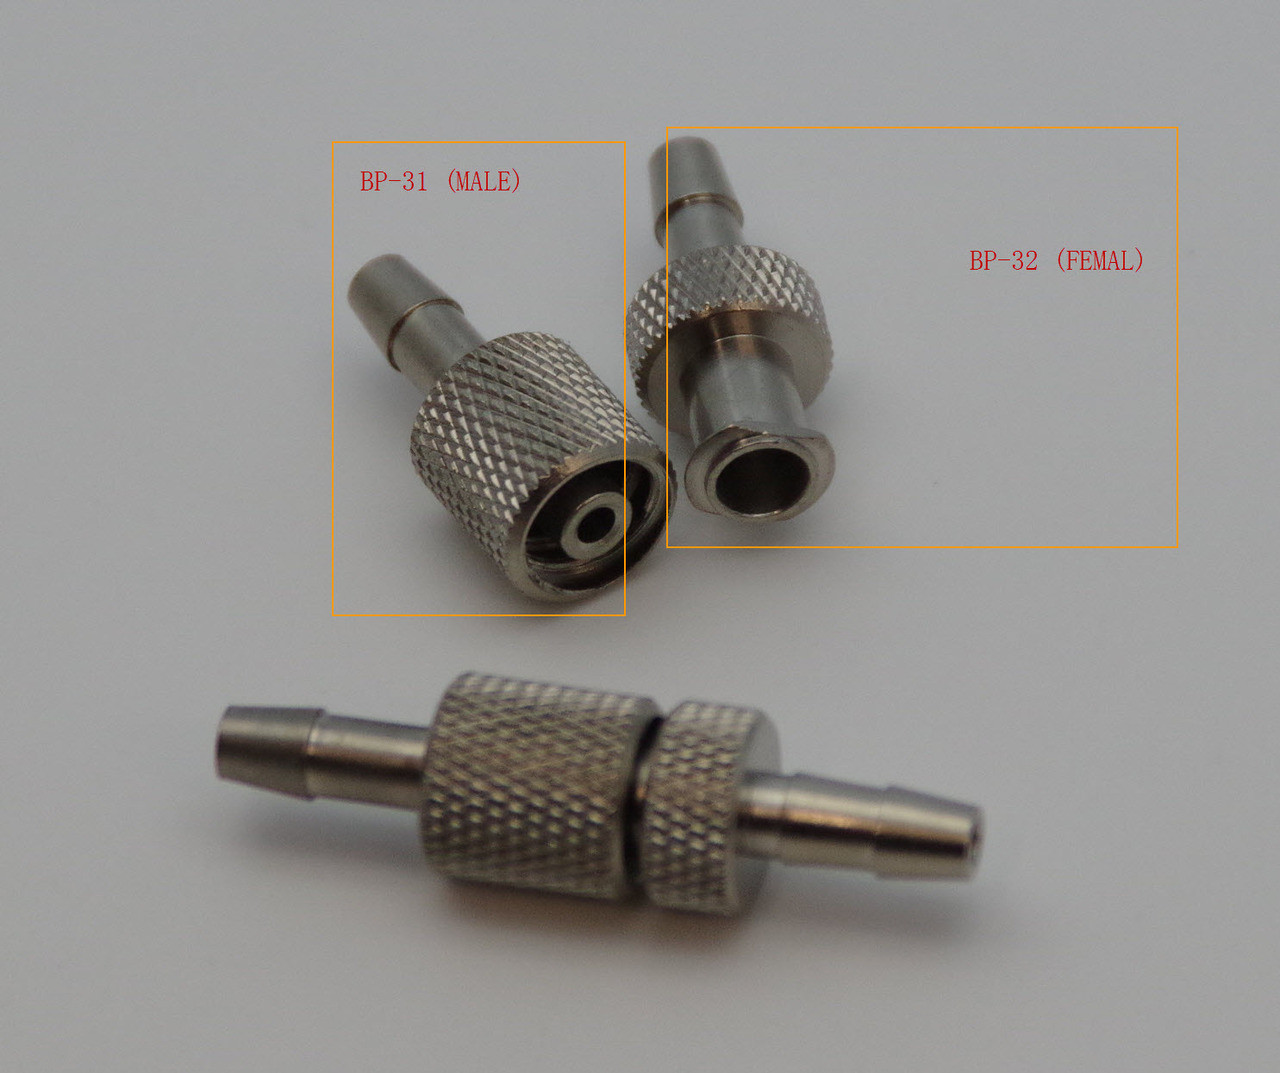 METAL hose connector FOR COLIN MONITOR (BP-32) FEMALE